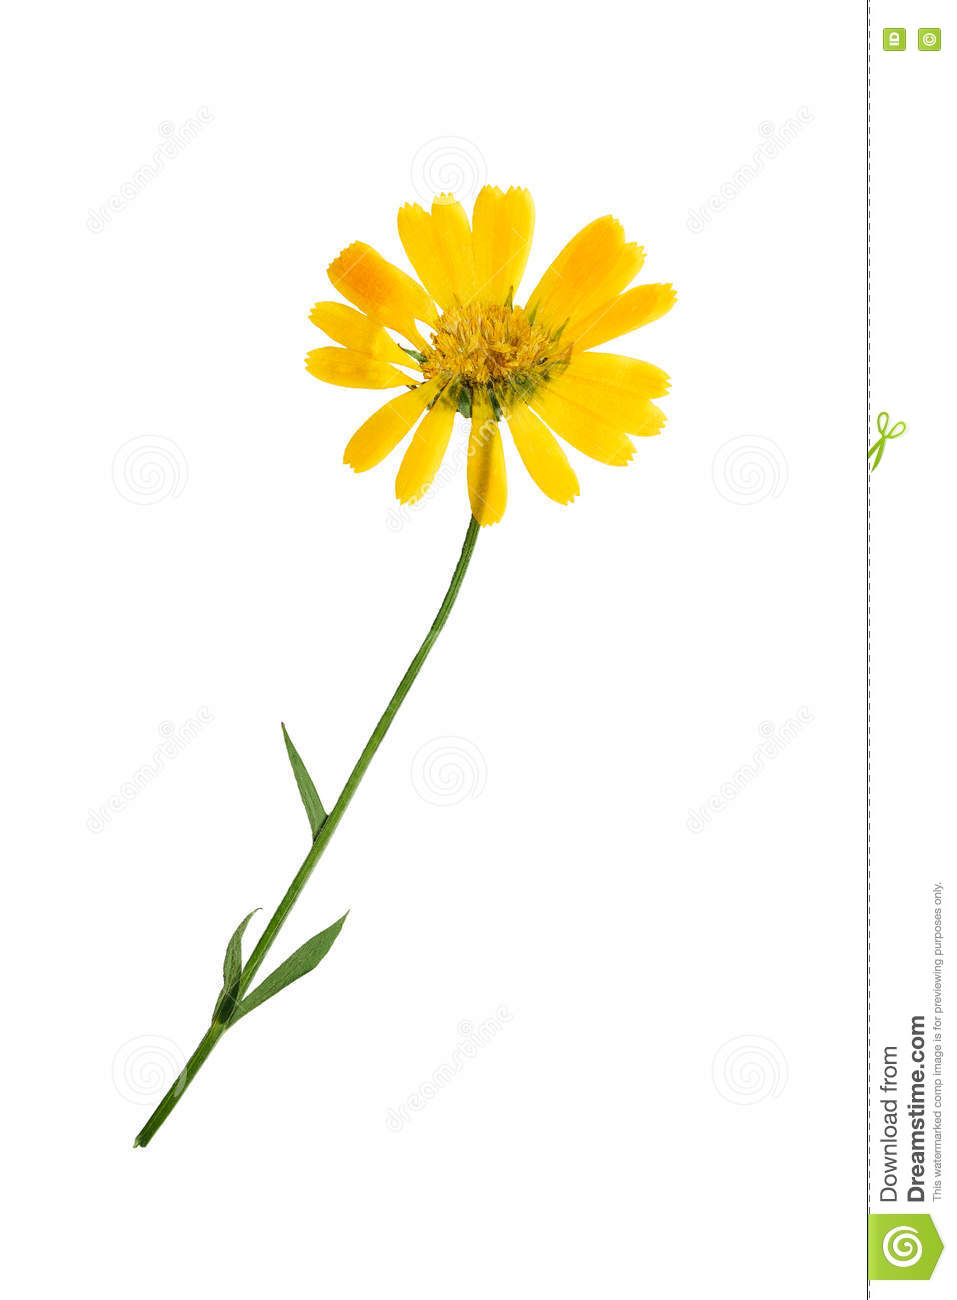 How to scrapbook dried flowers - Pressed And Dried Flowers Of Calendula Officinalis Isolated